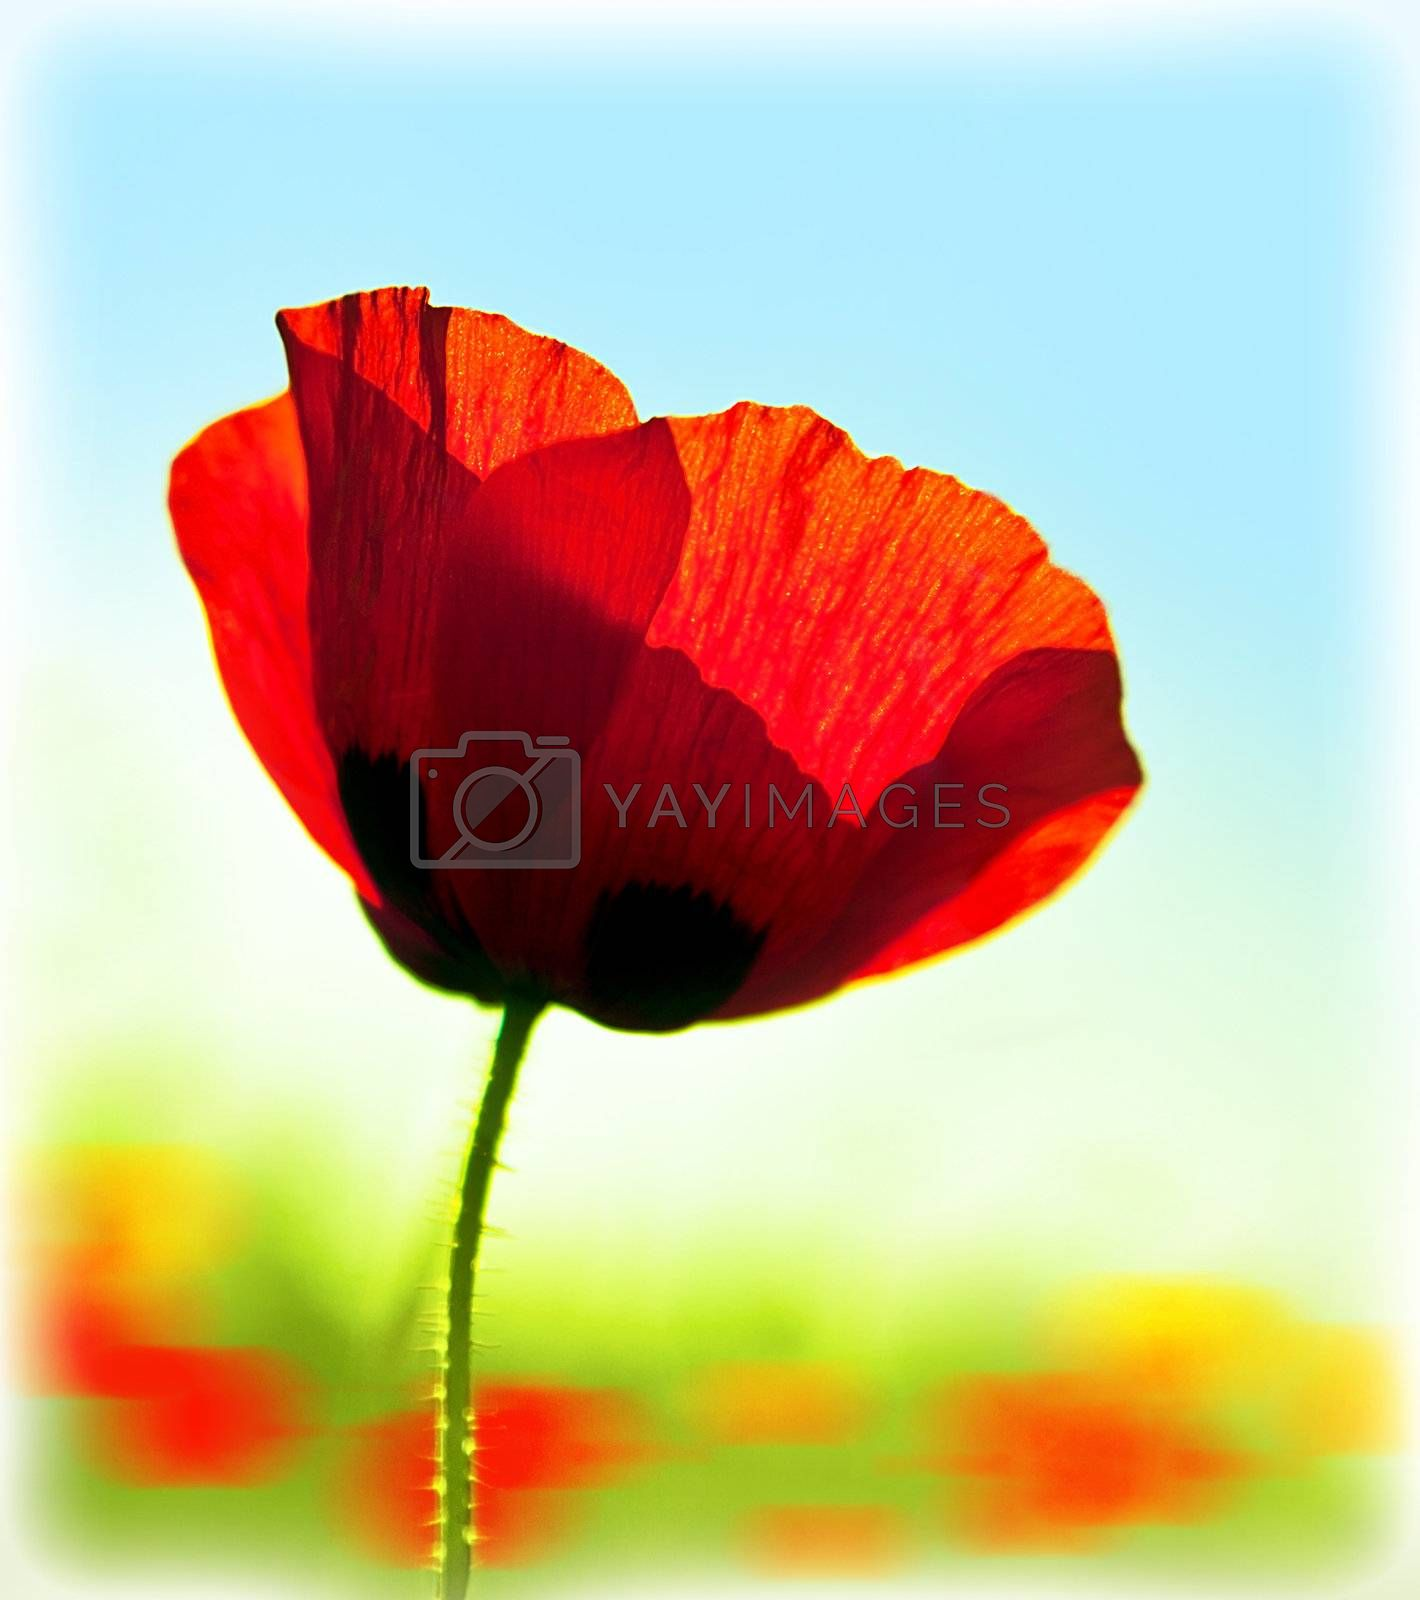 Blooming flower poppy field, big red plant blossom, spring meadow, natural colorful garden glade, abstract floral fresh background